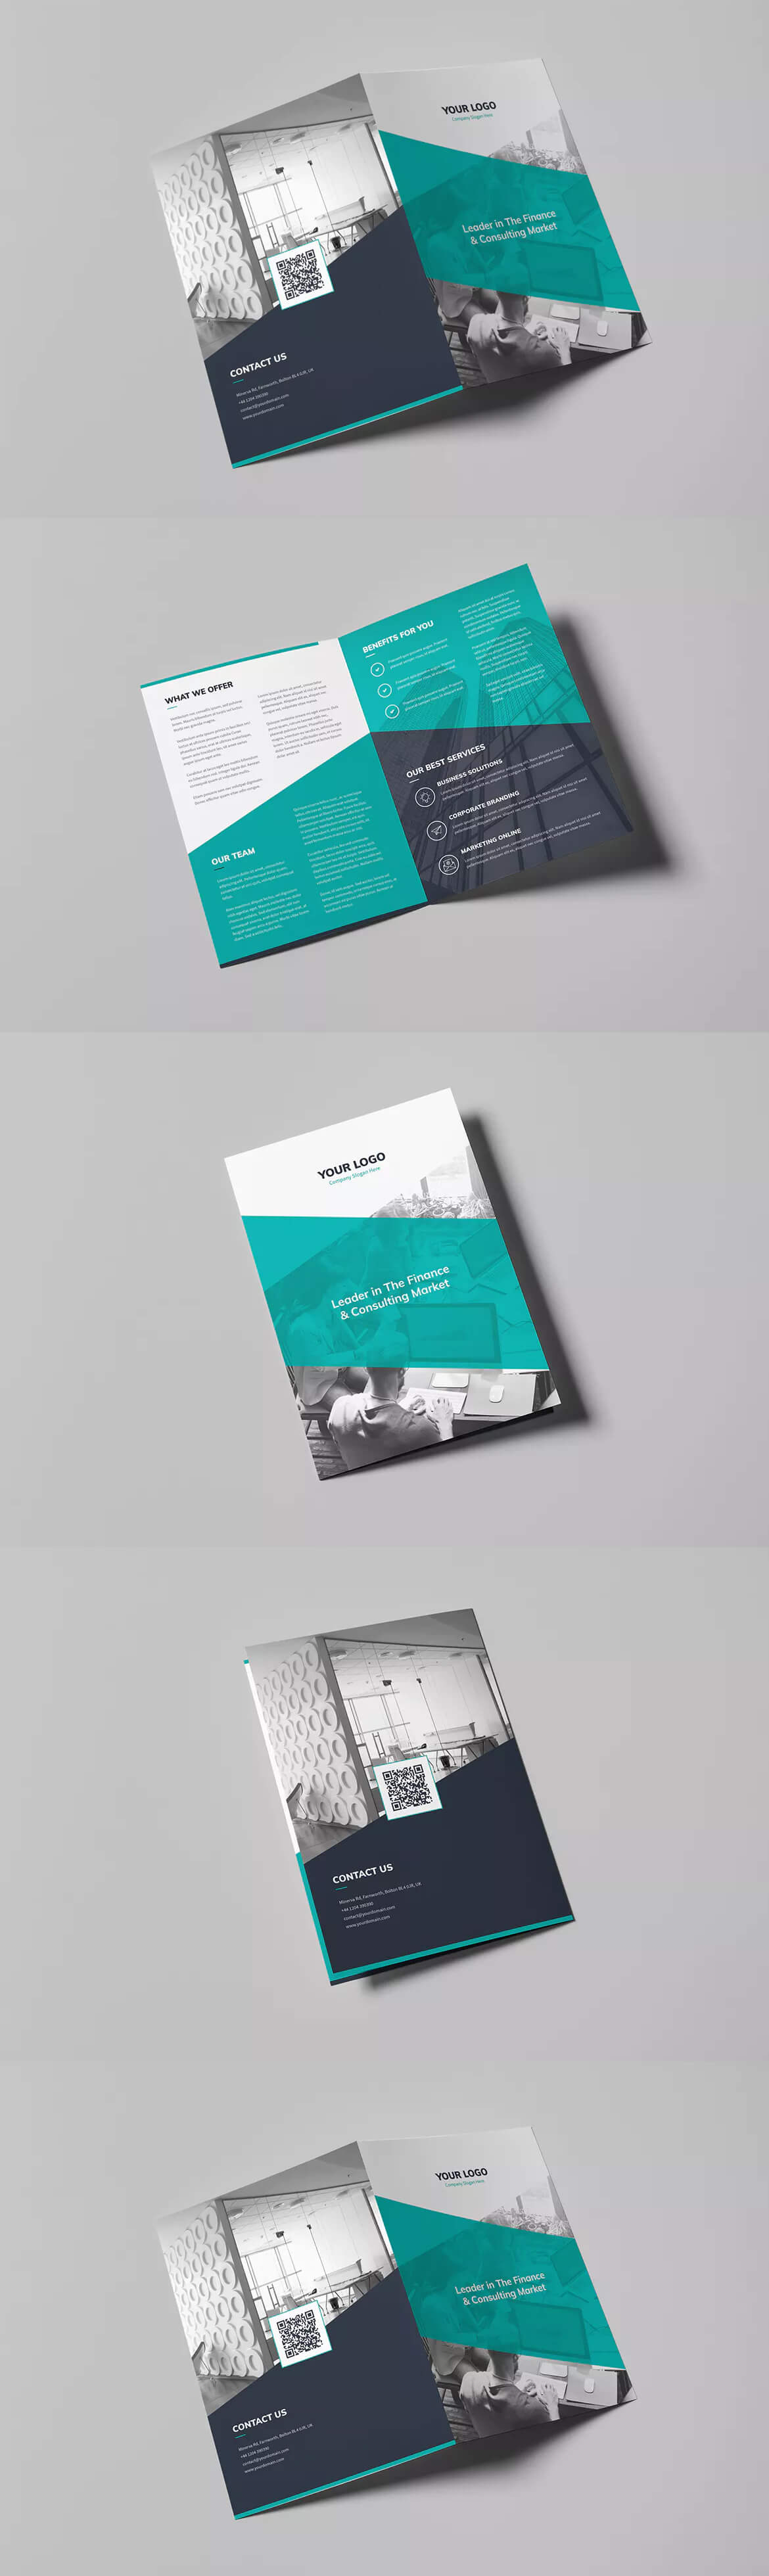 Corporate Bi-Fold Brochure Template Psd A4 And Us Letter with regard to Letter Size Brochure Template